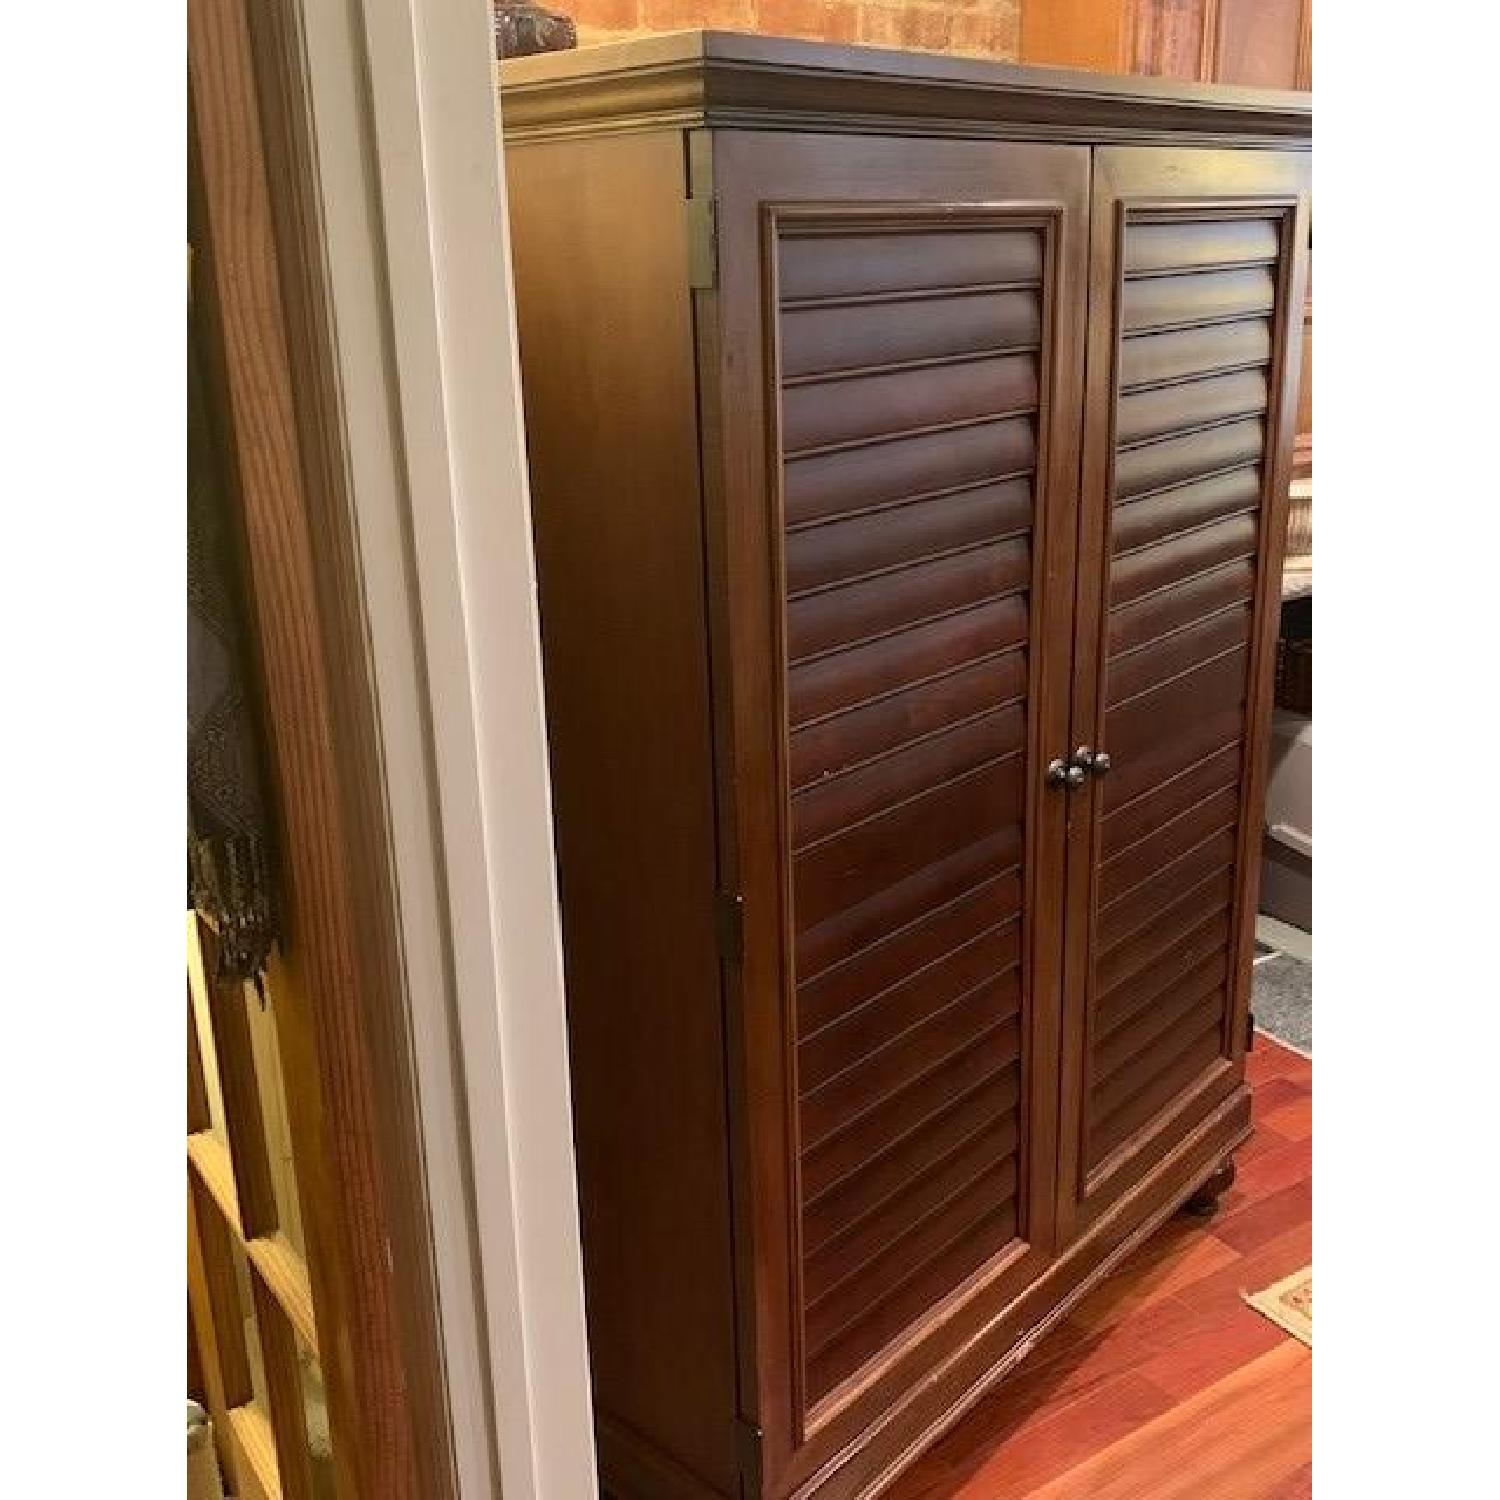 Hooker Furniture Media Cabinet/Armoire in Mahogany Finish - image-2